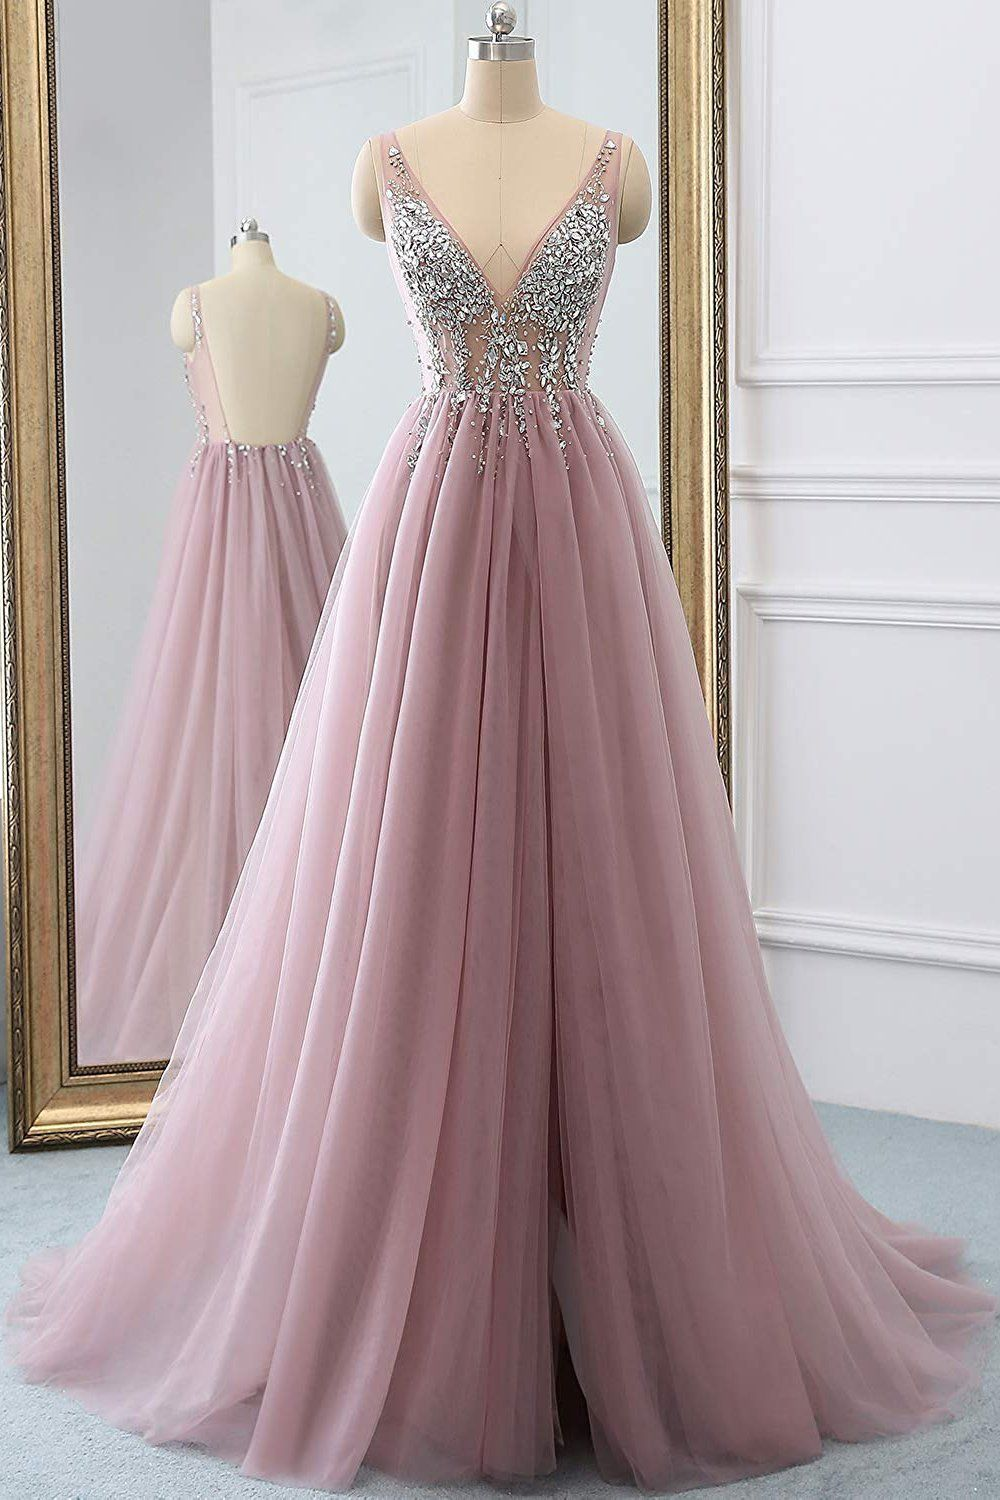 Dusty Pink A Line Tulle Prom Dress Sparkly V Neck Long Graduation Dress With Rhinestone N Senior Prom Dresses Beaded Bodice Prom Dress Graduation Dresses Long [ 1500 x 1000 Pixel ]